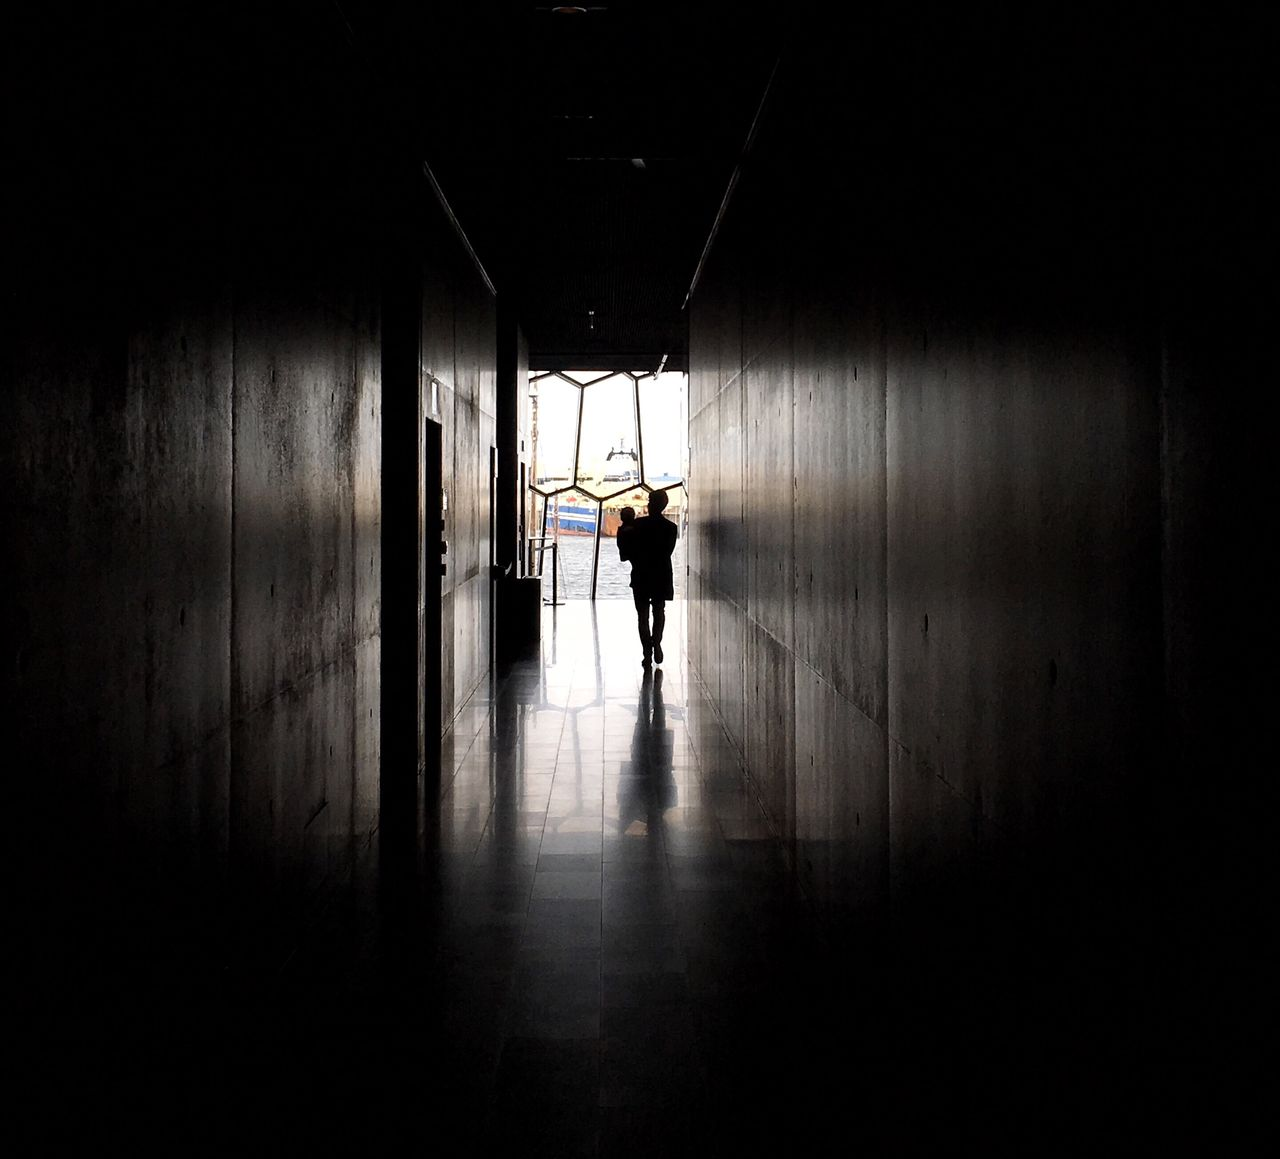 indoors, walking, corridor, one person, full length, real people, architecture, men, day, people